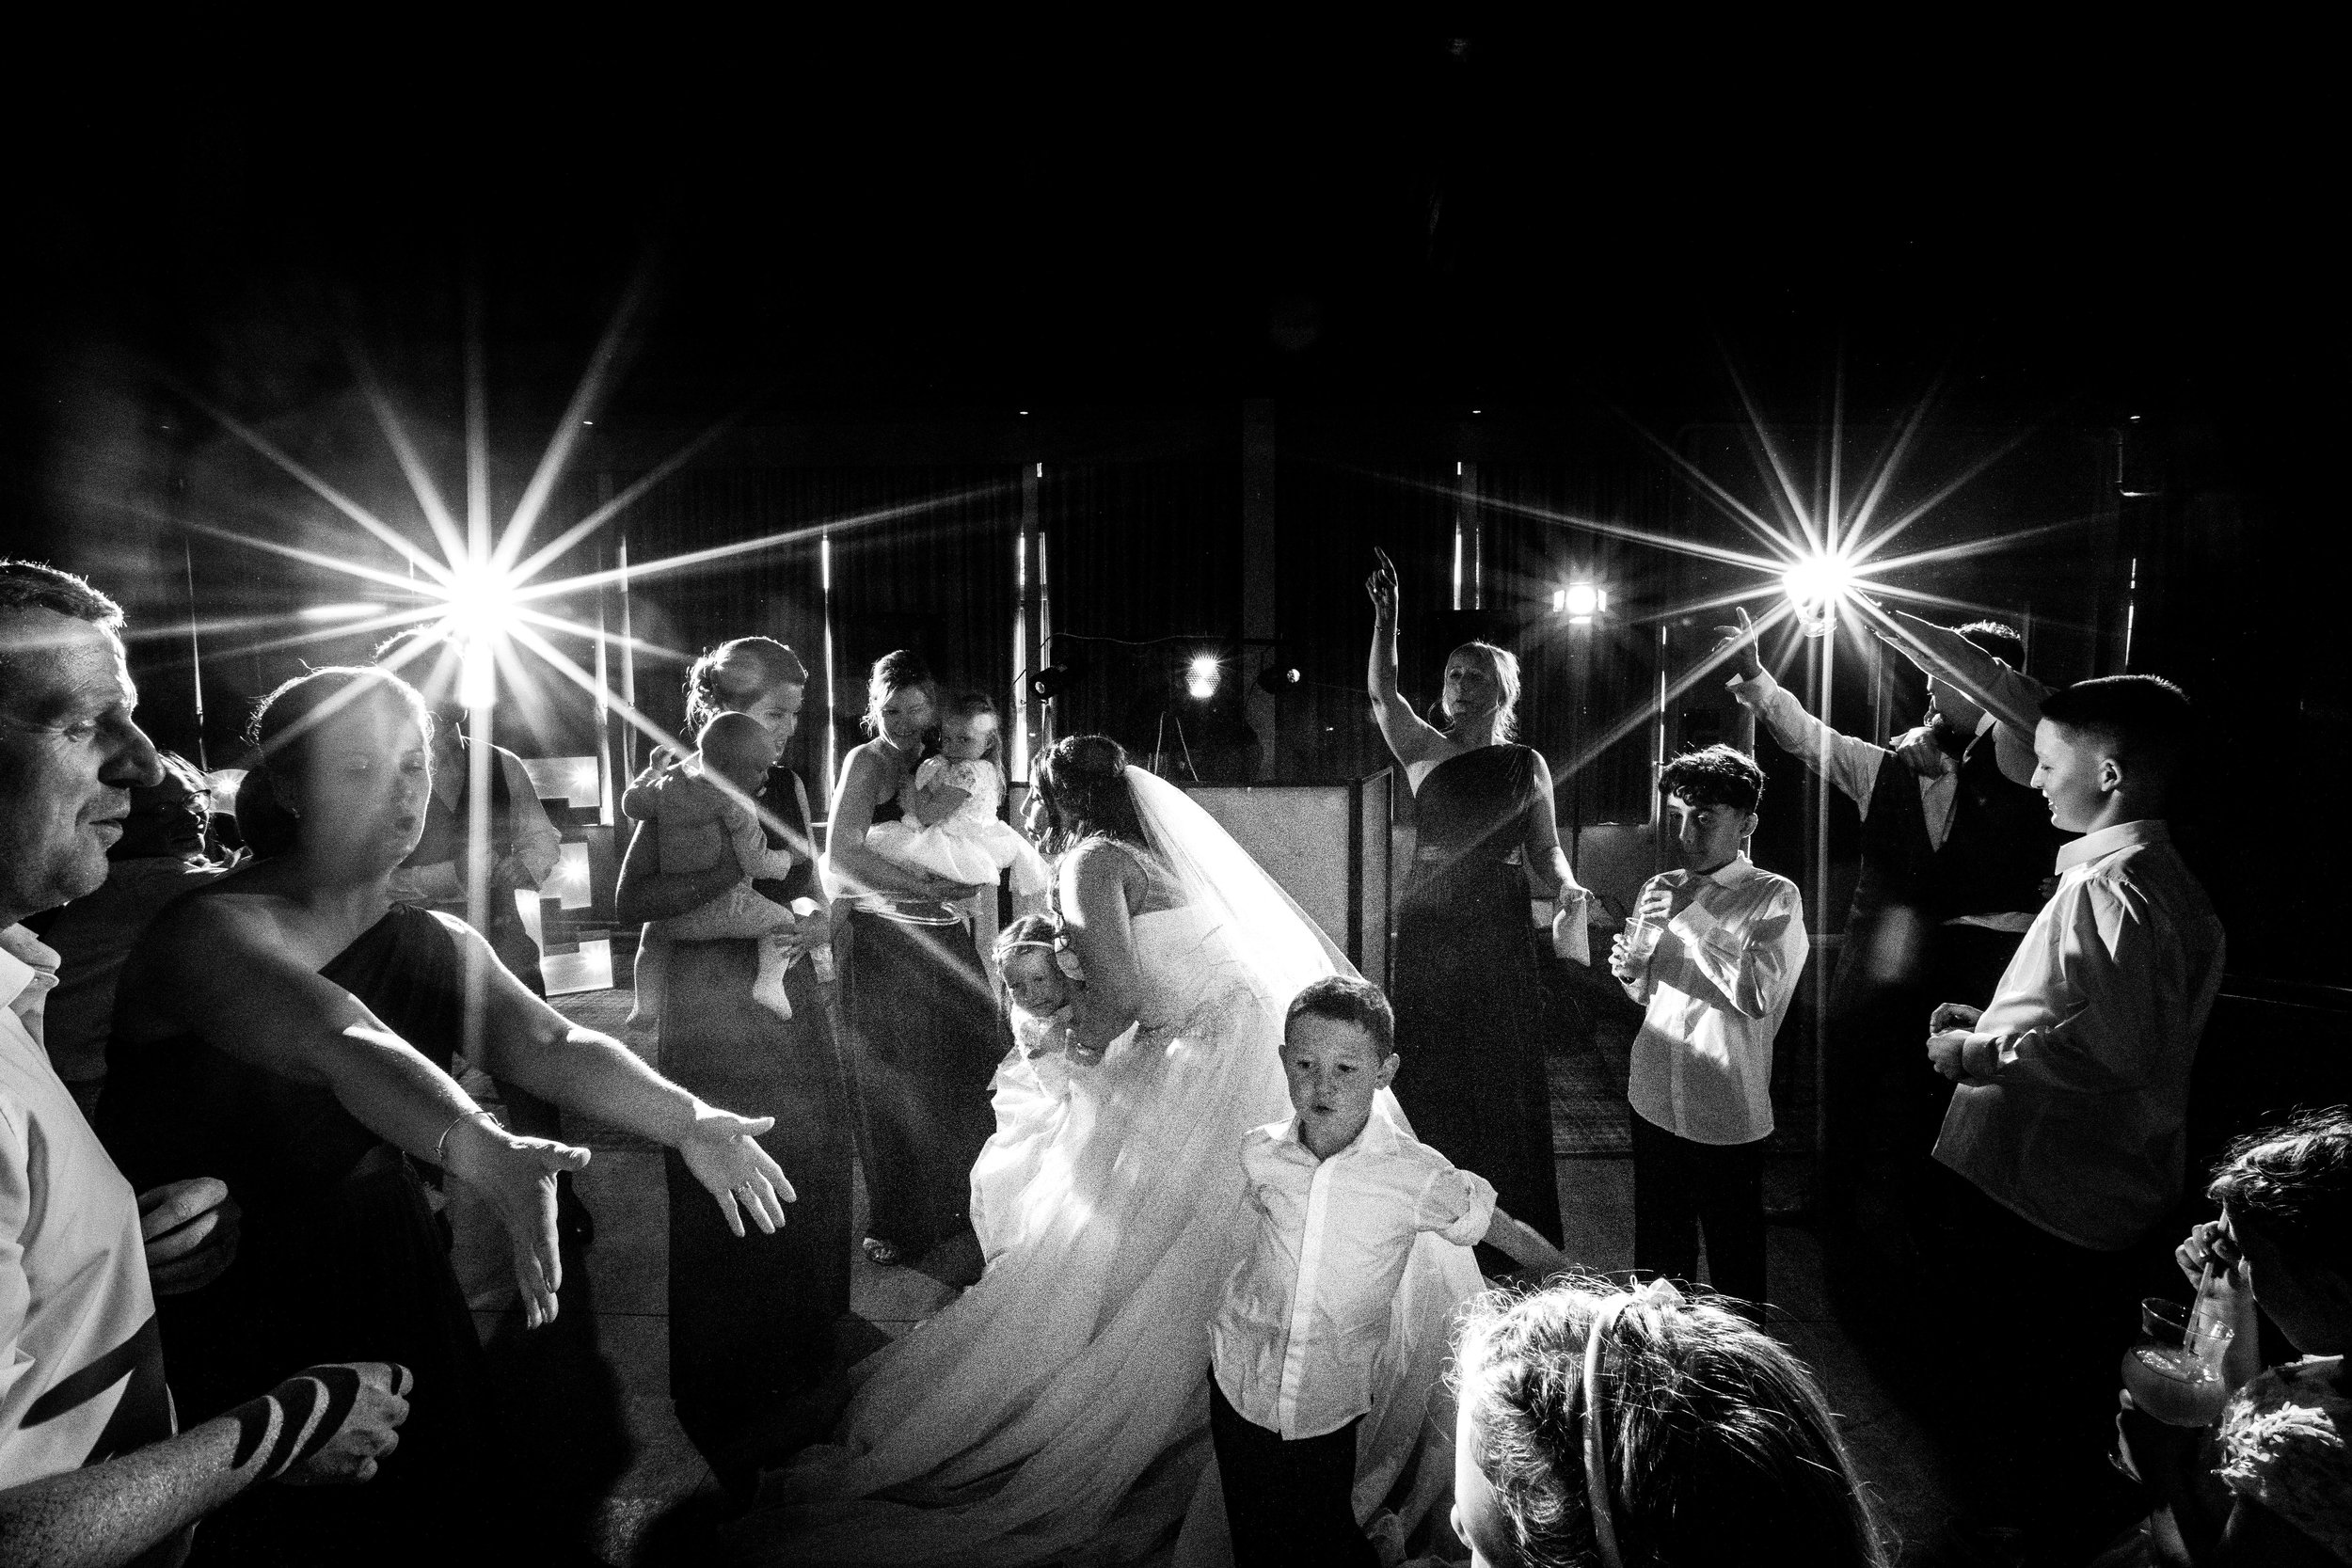 woburn-bedfordshire-london-wedding-photography-videography-59